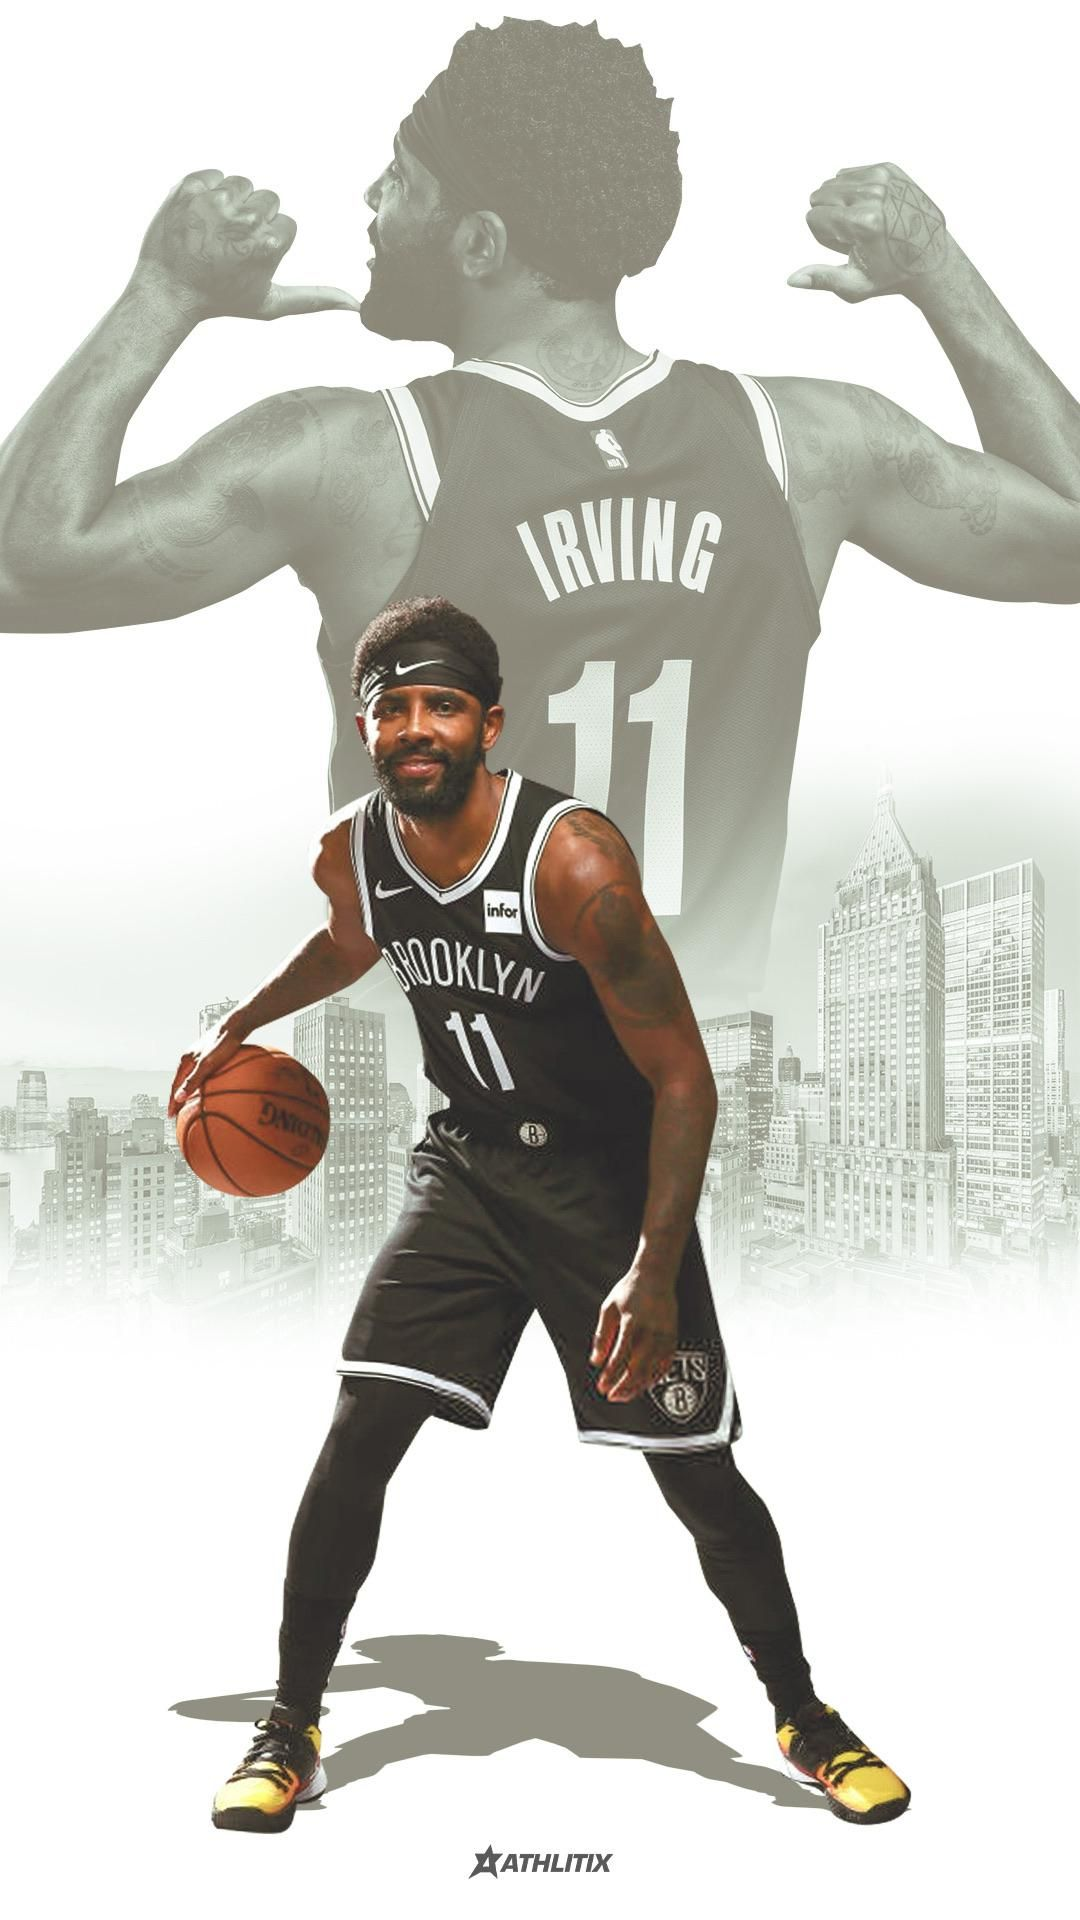 Kyrie Irving Nets Background Image In 2020 Kyrie Irving Kyrie Irving Brooklyn Nets Kyrie Irving Celtics